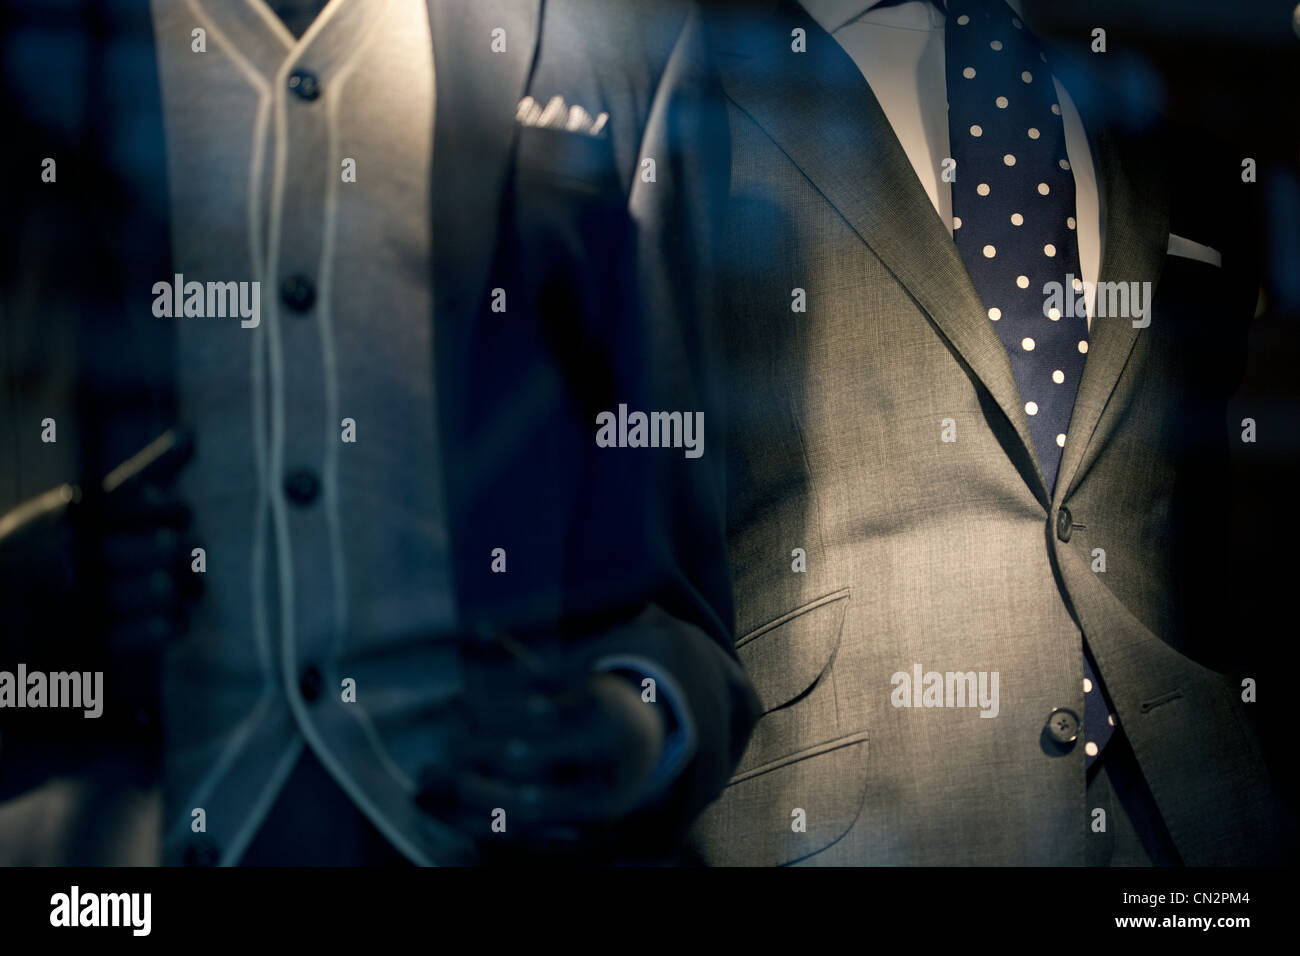 Two suits, close up - Stock Image